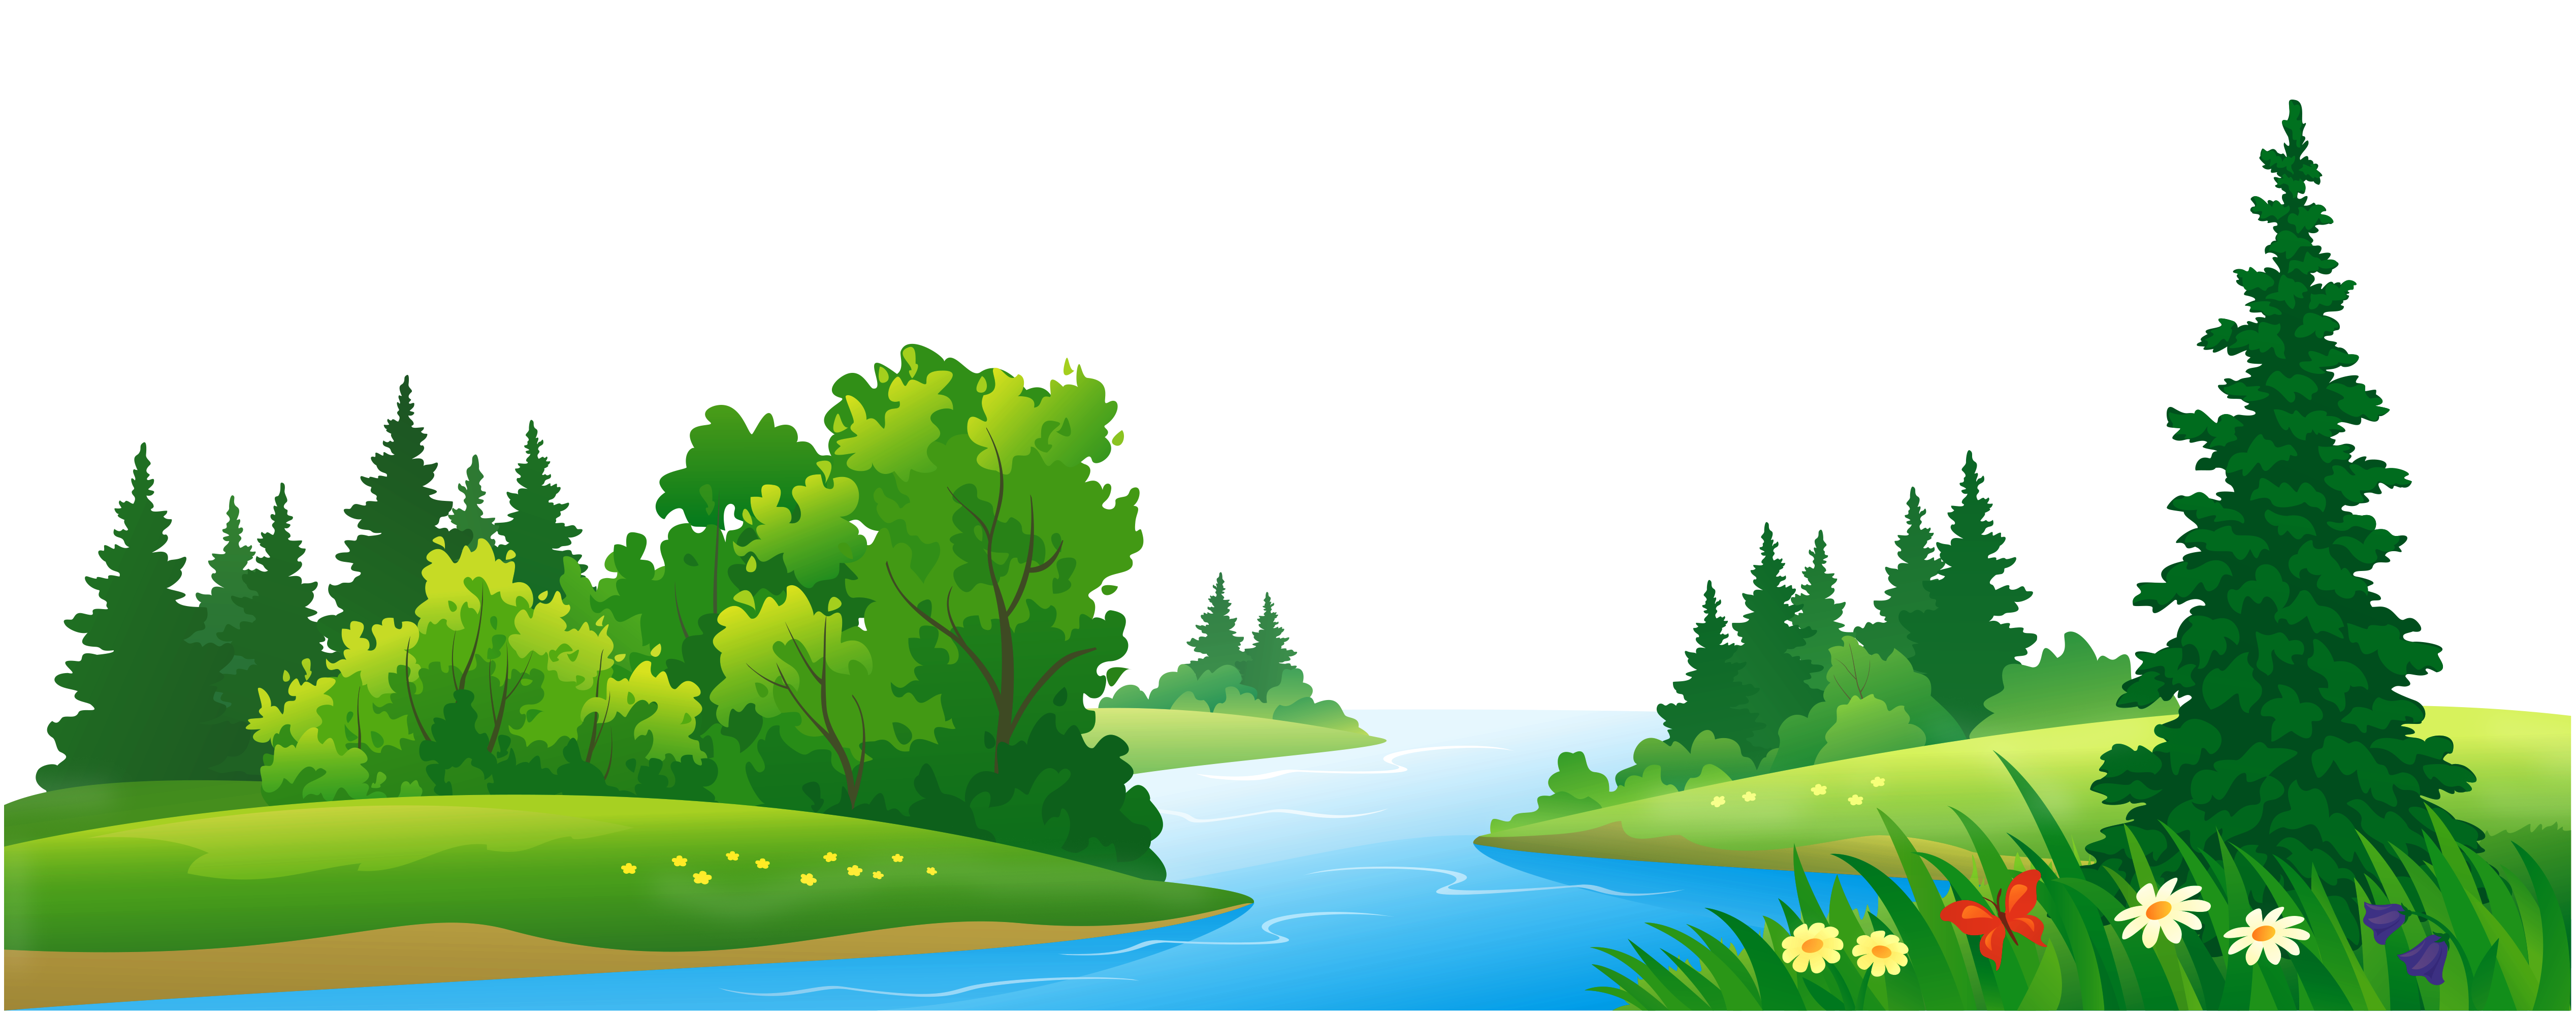 forest-clipart-lake-clip-art-rainforest-clipart